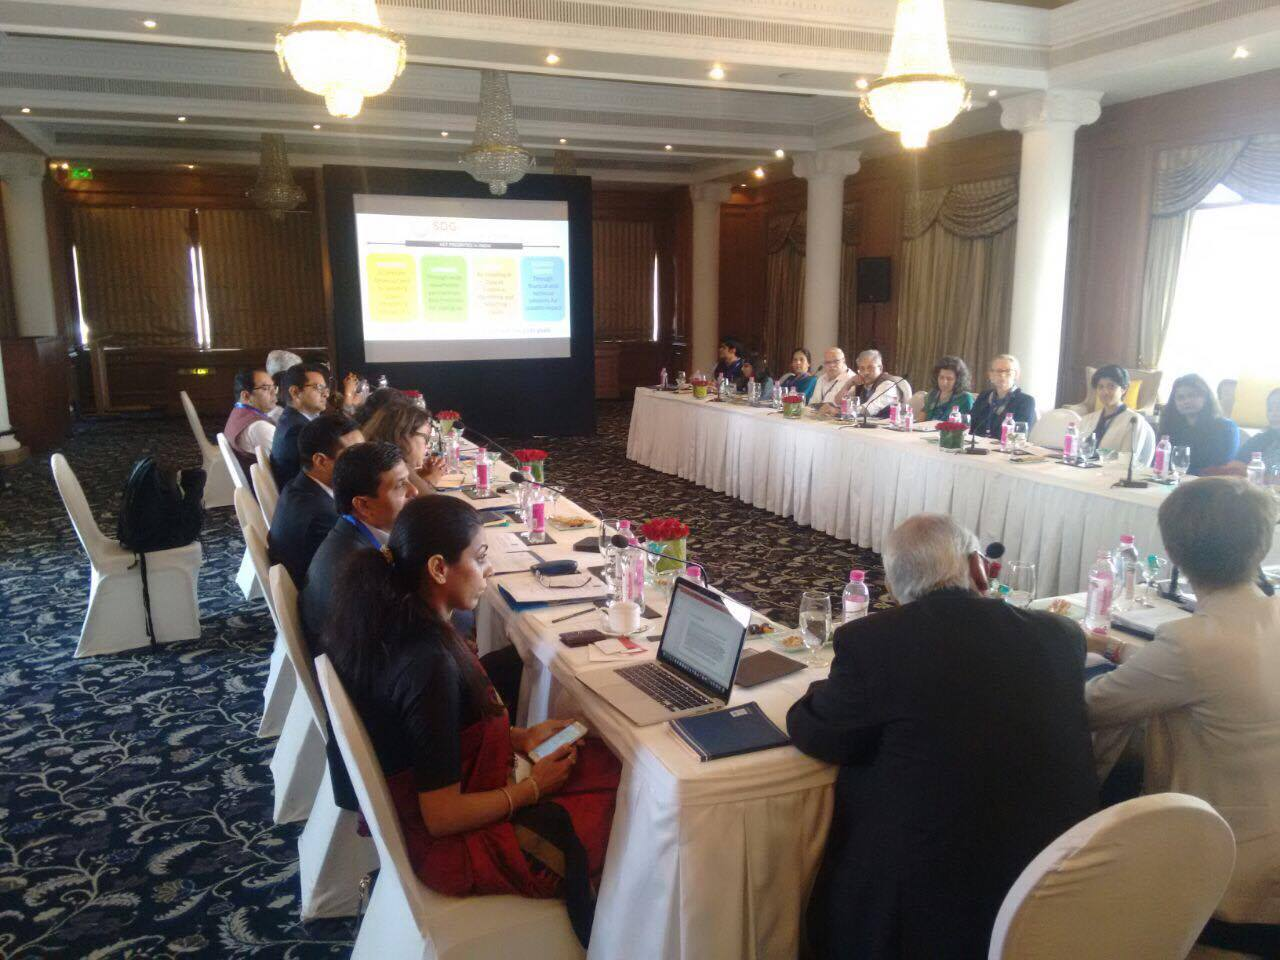 Roundtable to launch SDGPP to catalyze #partnerships for #SDGs in #India commences! @RockPhilanth @fdncenter @AvasantFound @StanfordAandE https://t.co/7LEt4qZ9Sg